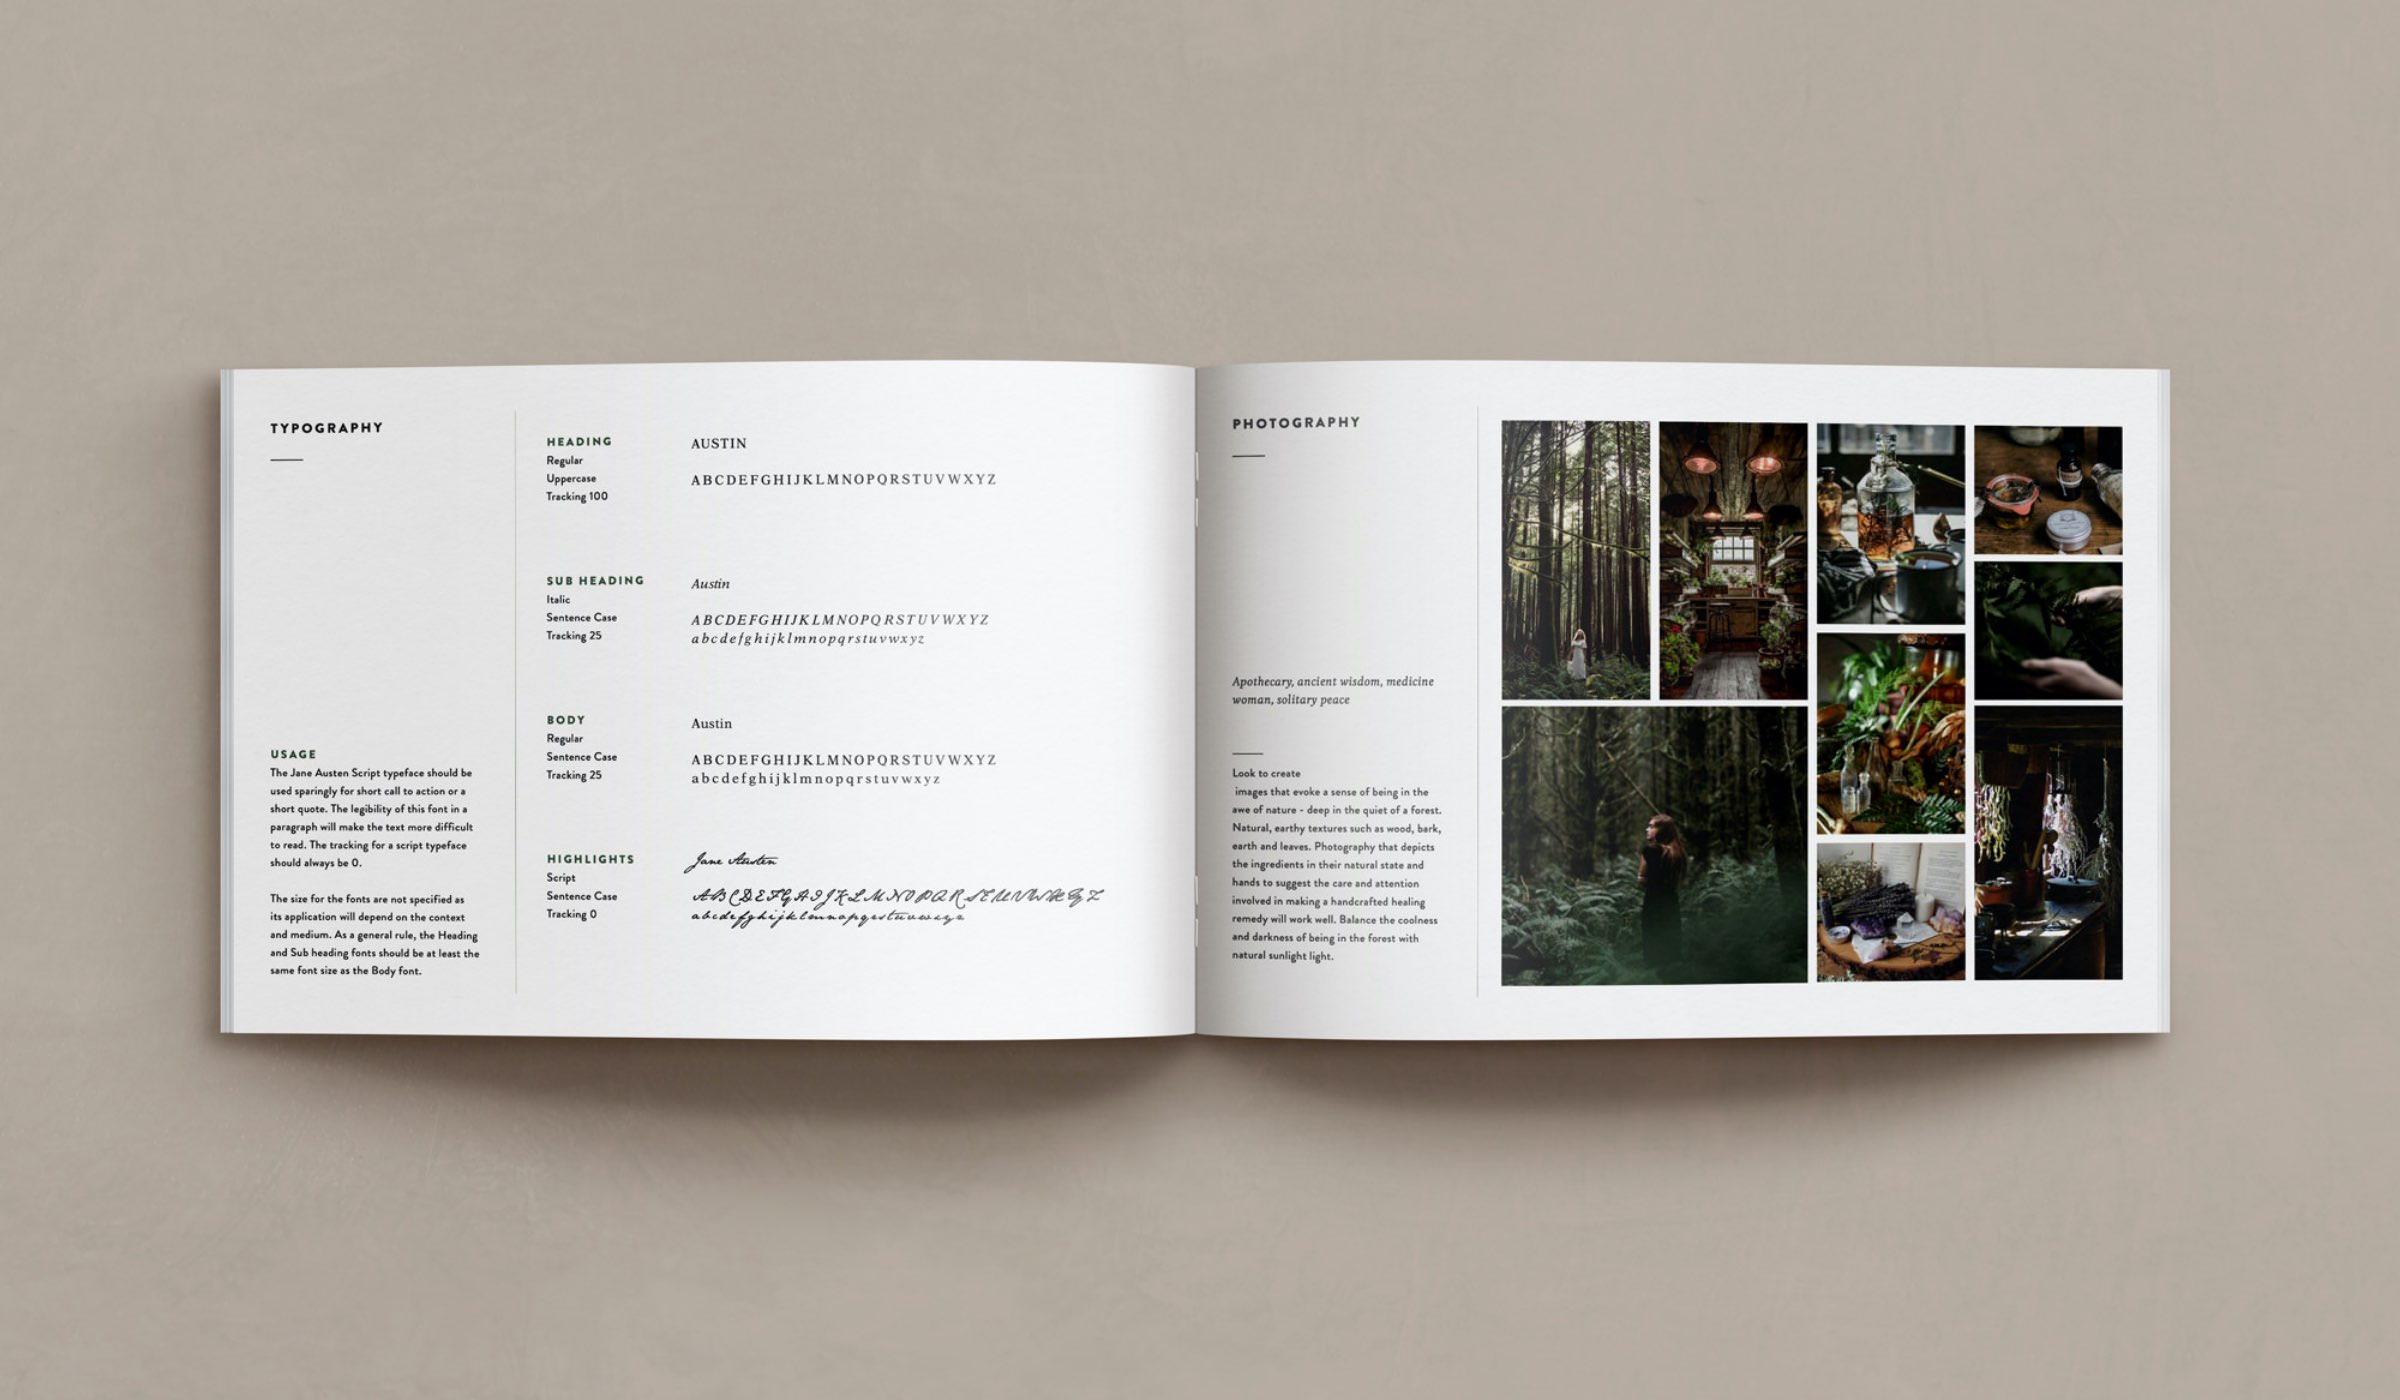 Tracey McLean brand style guide